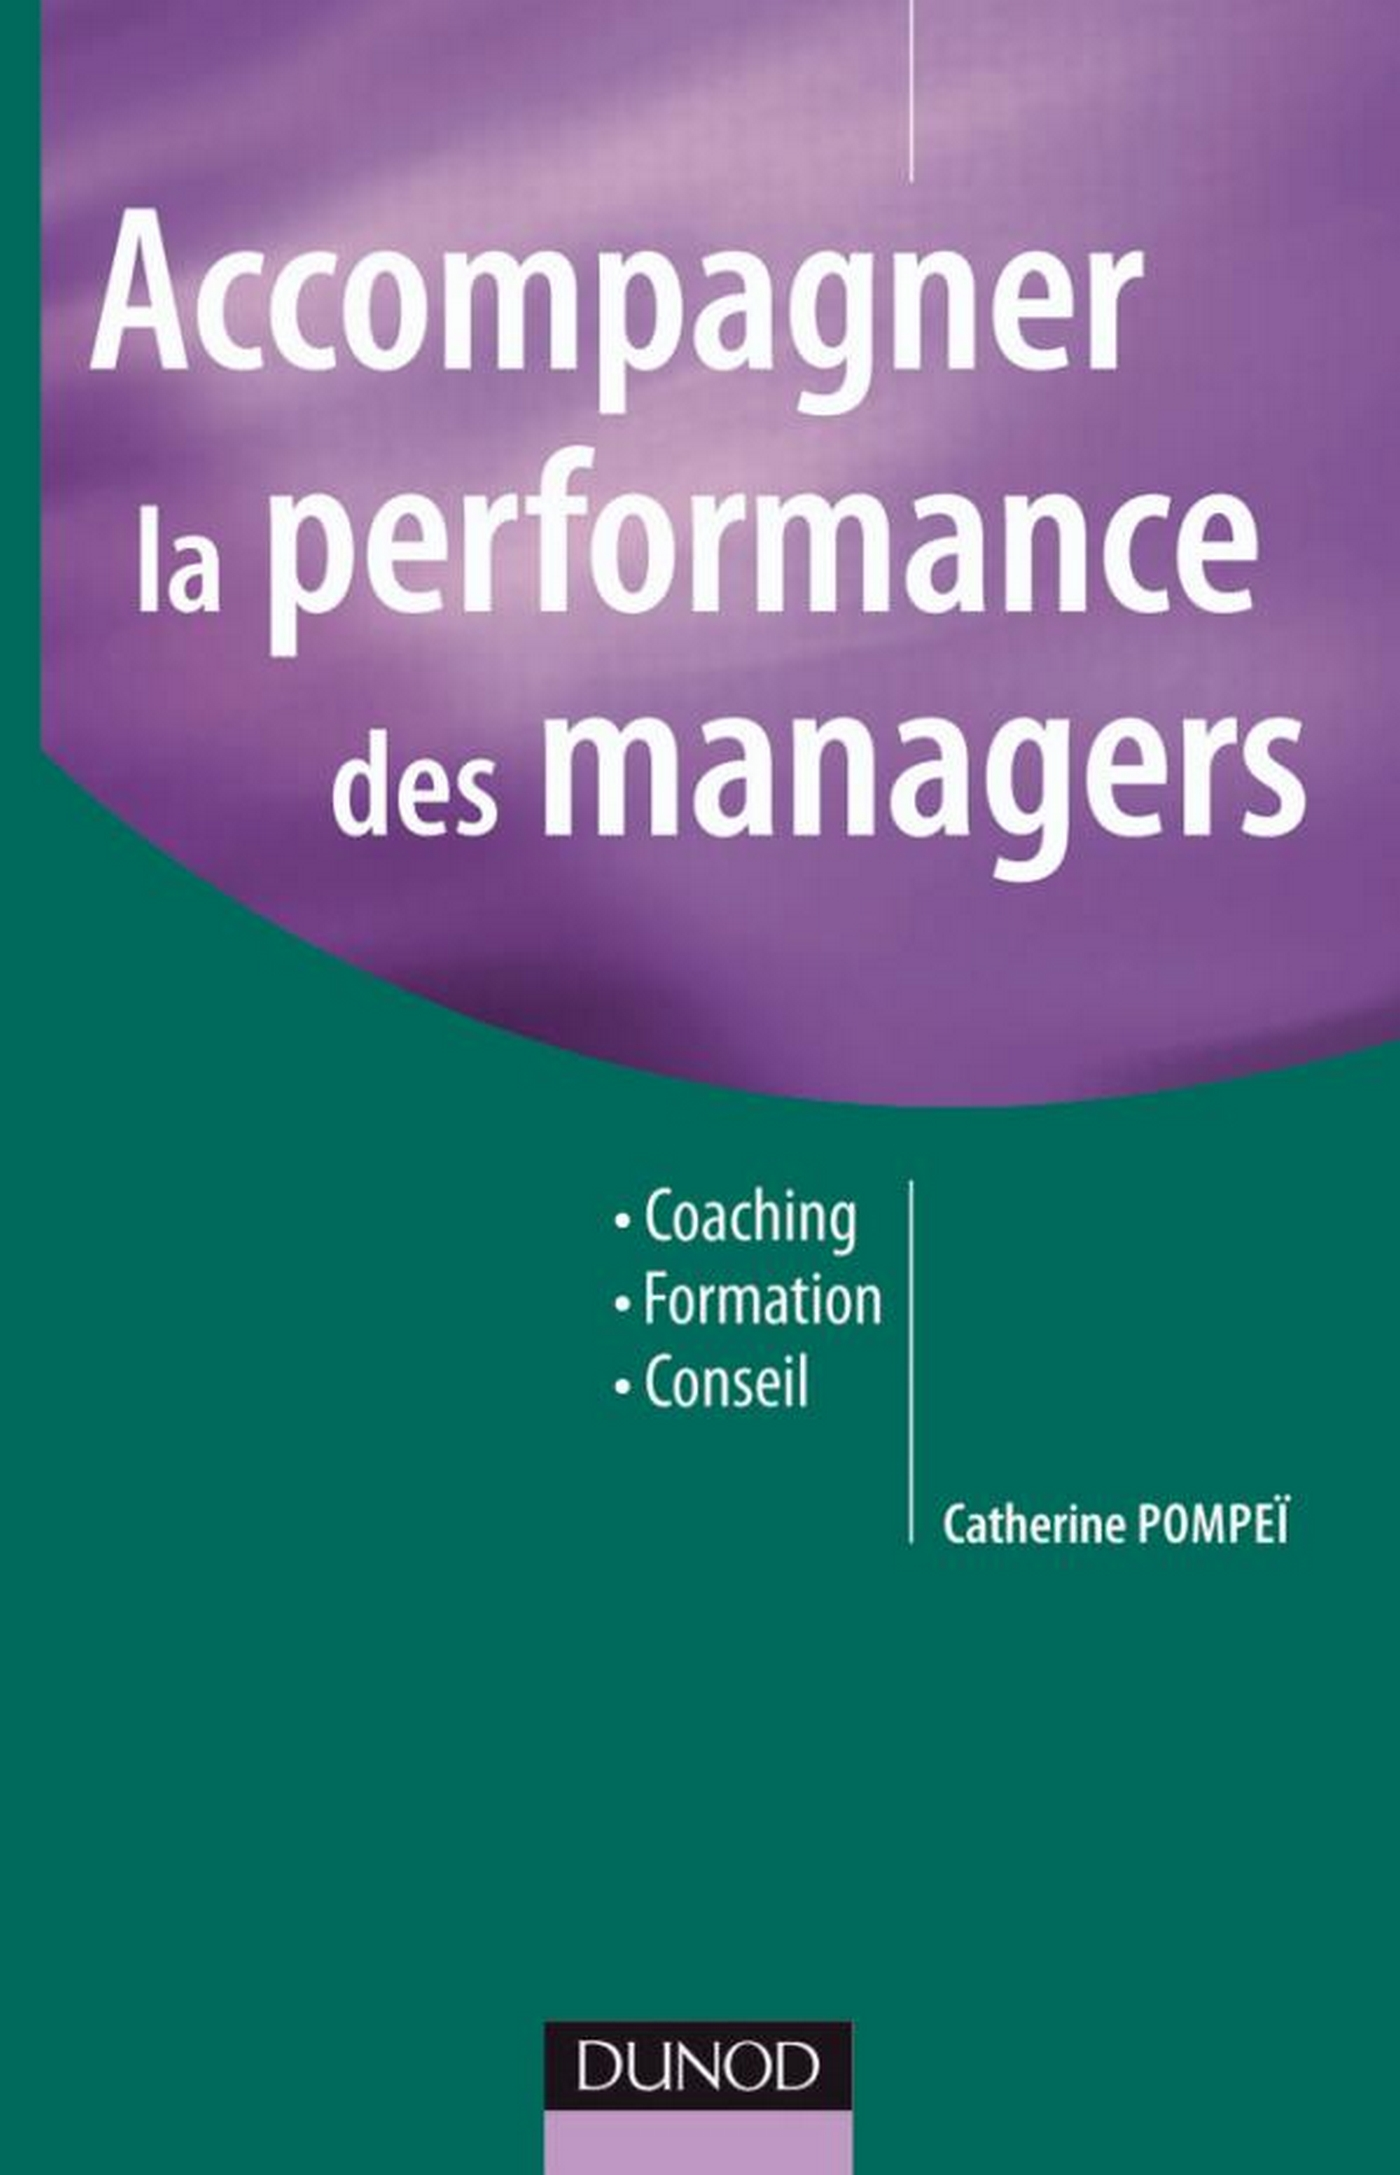 Accompagner la performance des managers